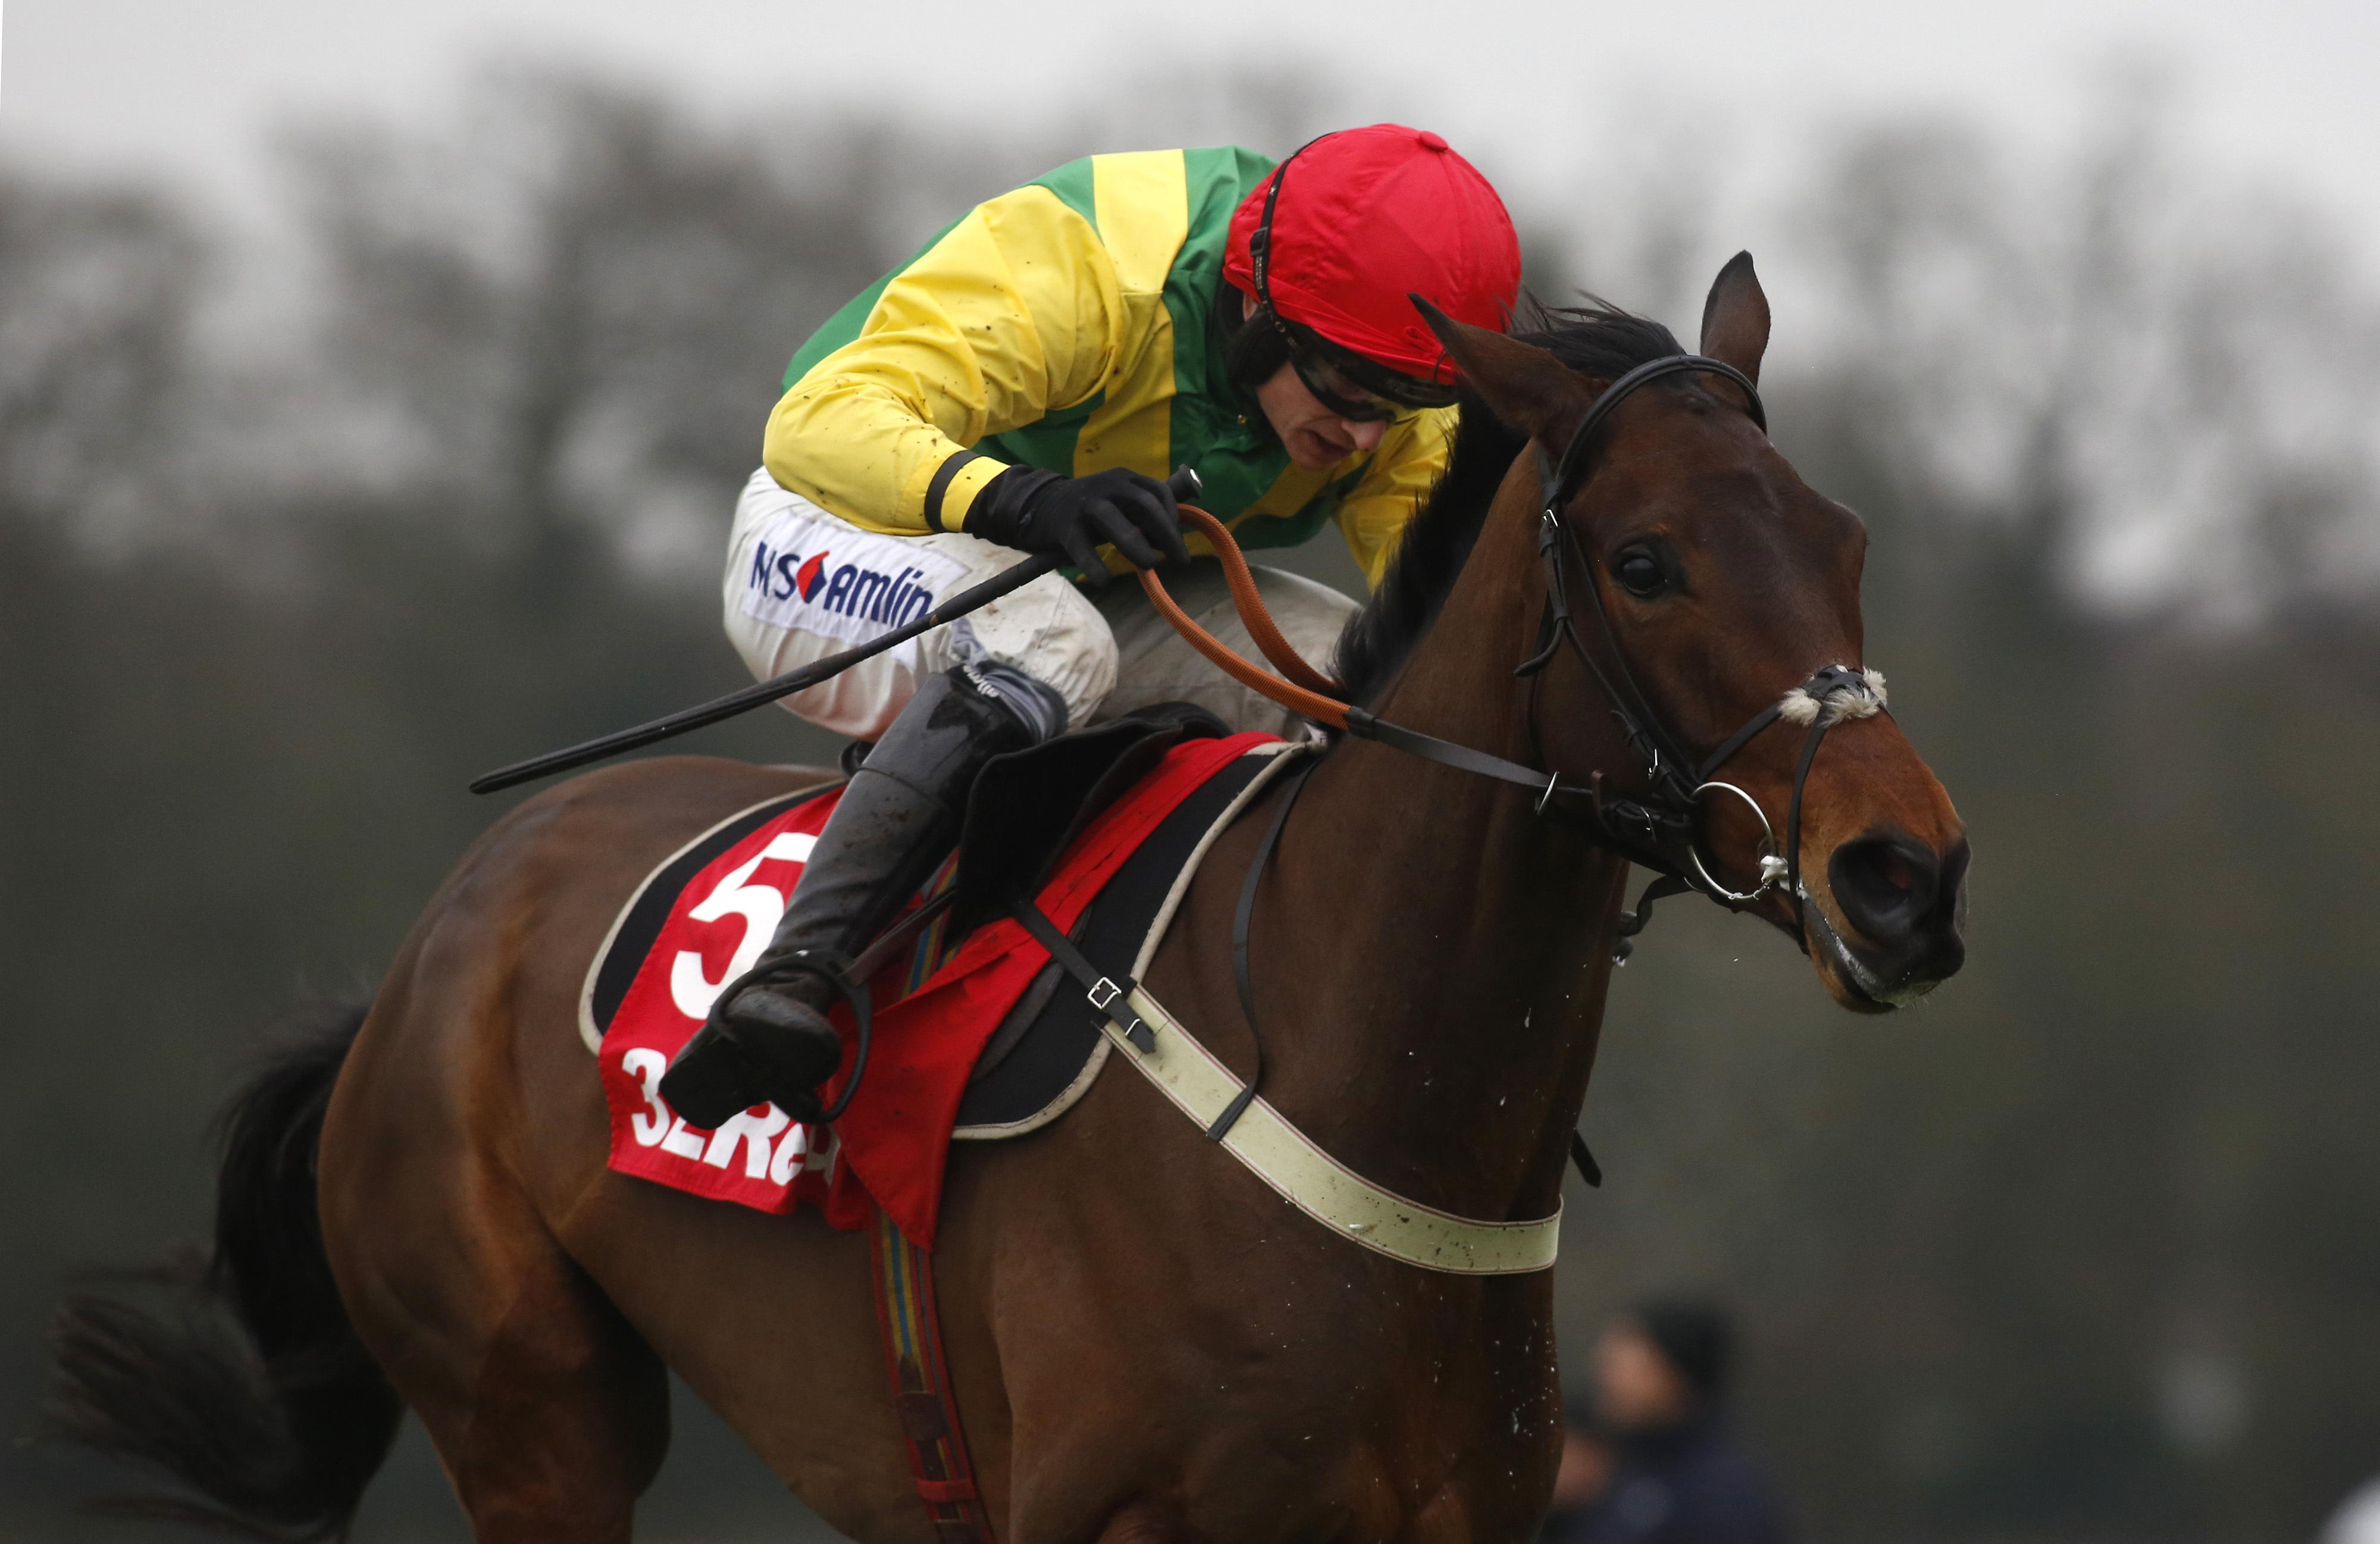 Finian's Oscar has disappointed on his last few starts